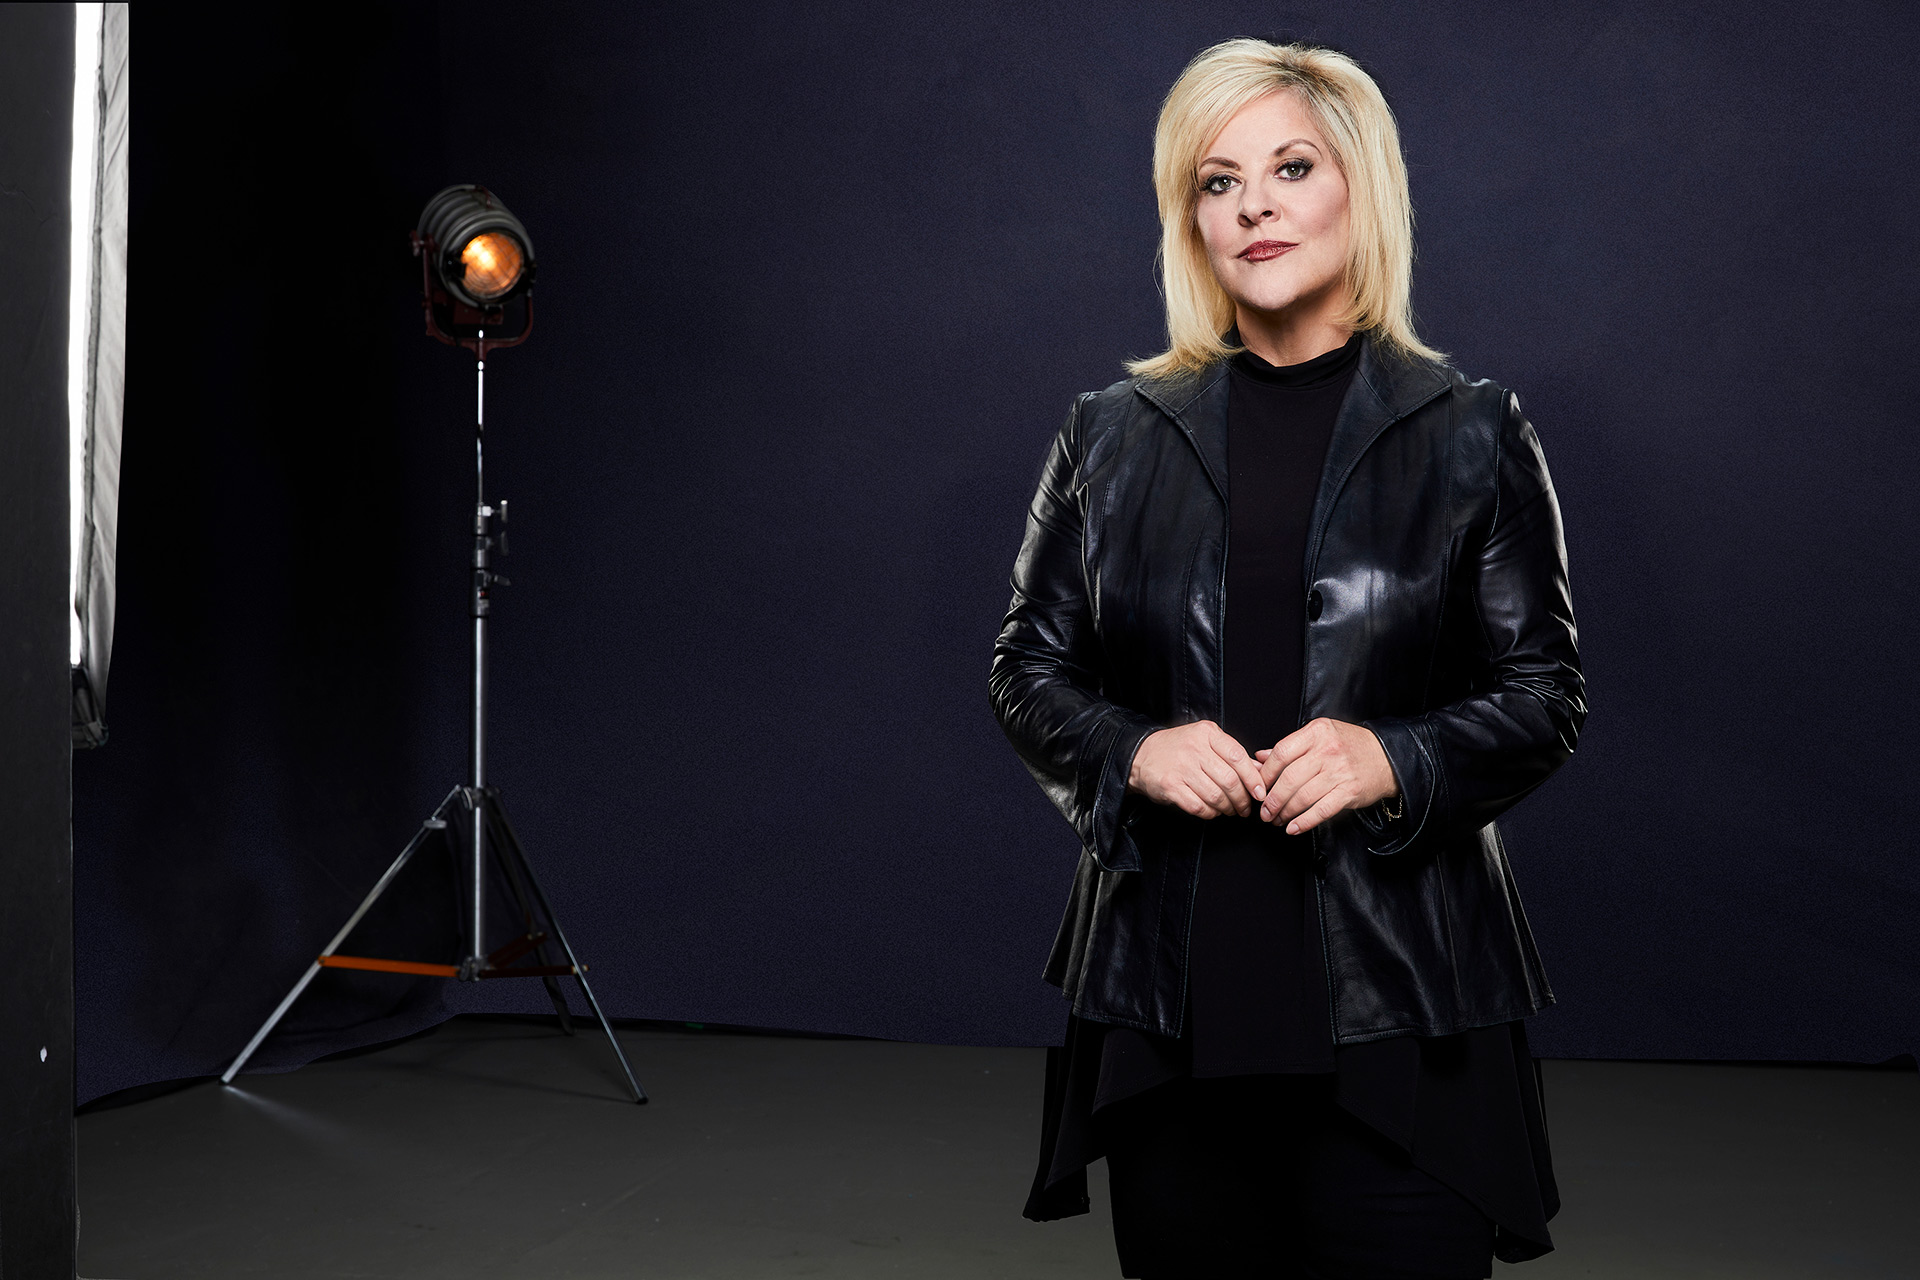 Nancy Grace on Covering Crime as a 'Straightjacket Mom' (Not a 'Helicopter Mom')